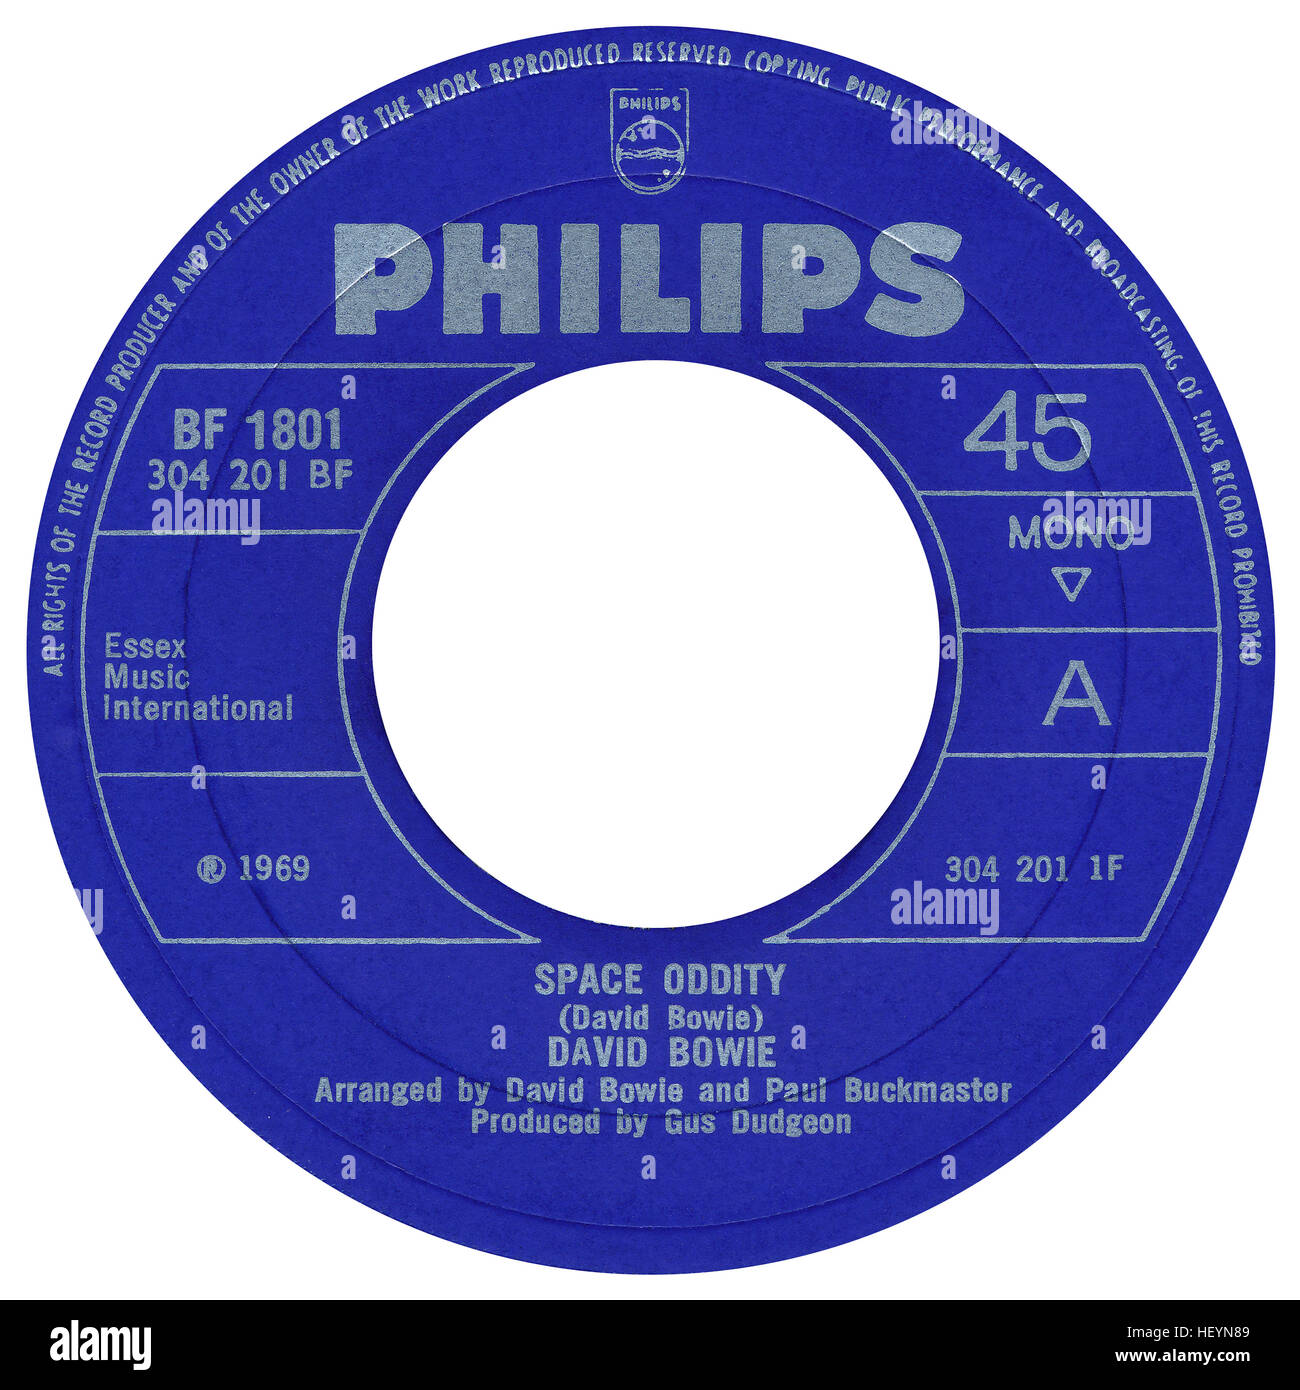 45 RPM 7' UK record label of Space Oddity by David Bowie on the Philips label from 1969 - Stock Image